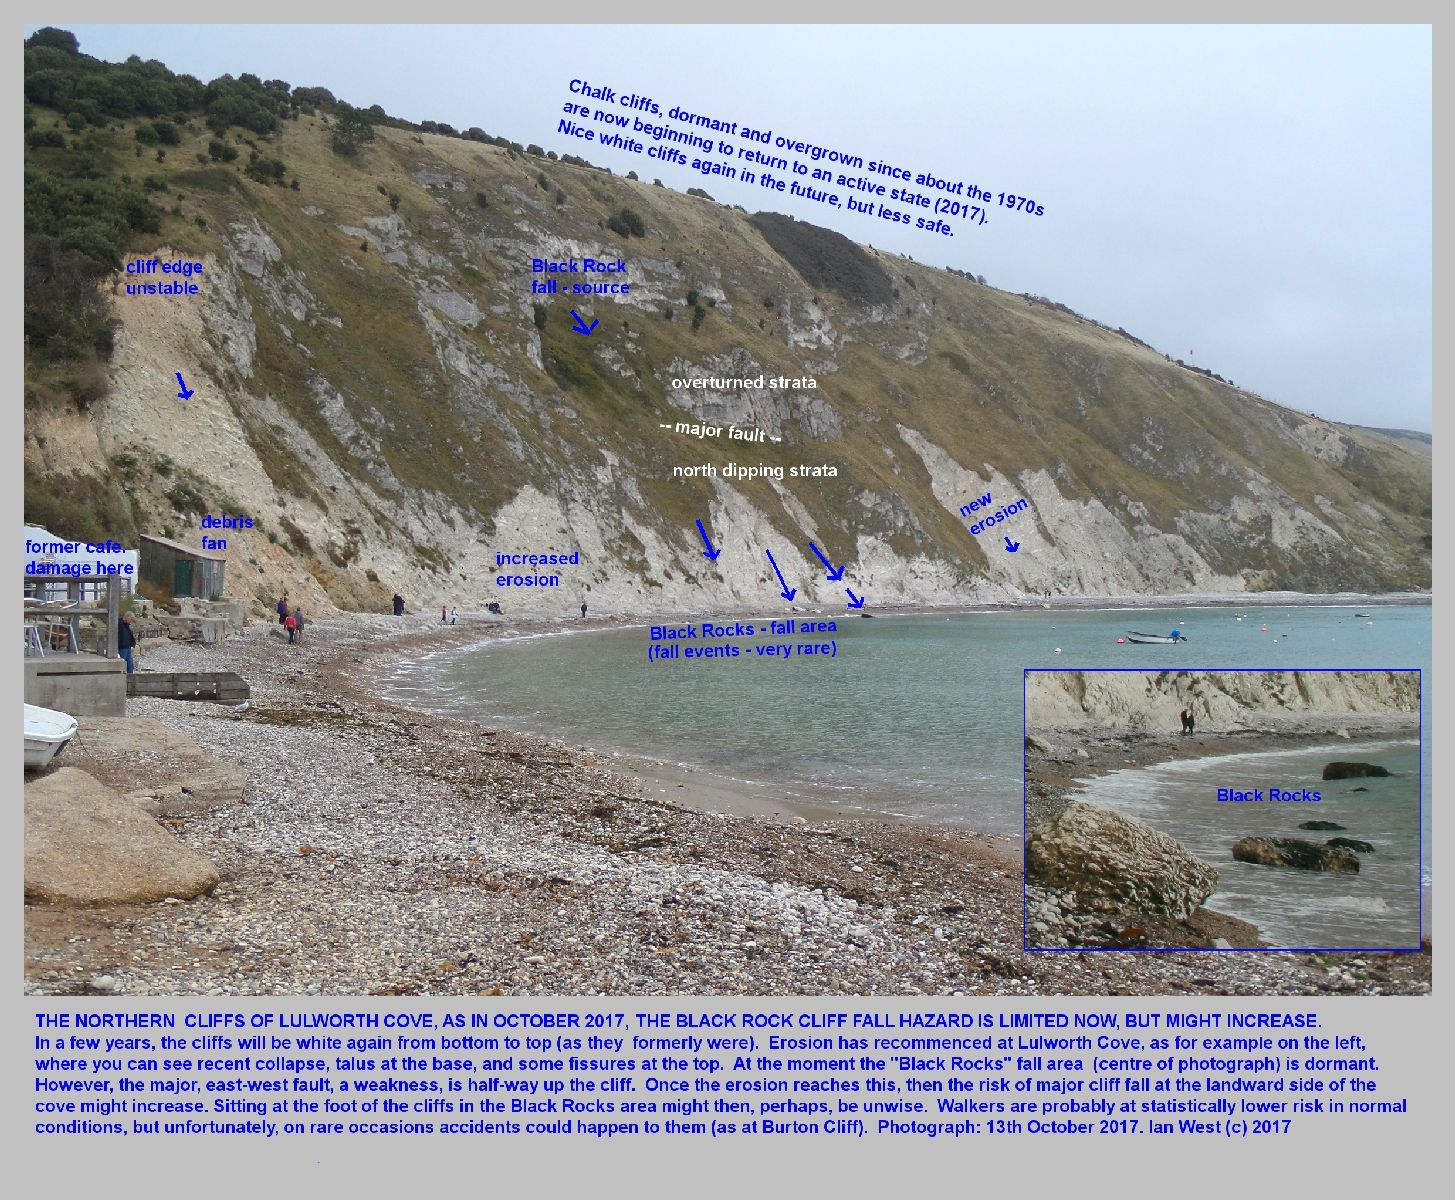 The Chalk cliffs at the back of Lulworth Cove, Dorset, as seen in October 2017, and showing increased erosion in the lower part of the cliff